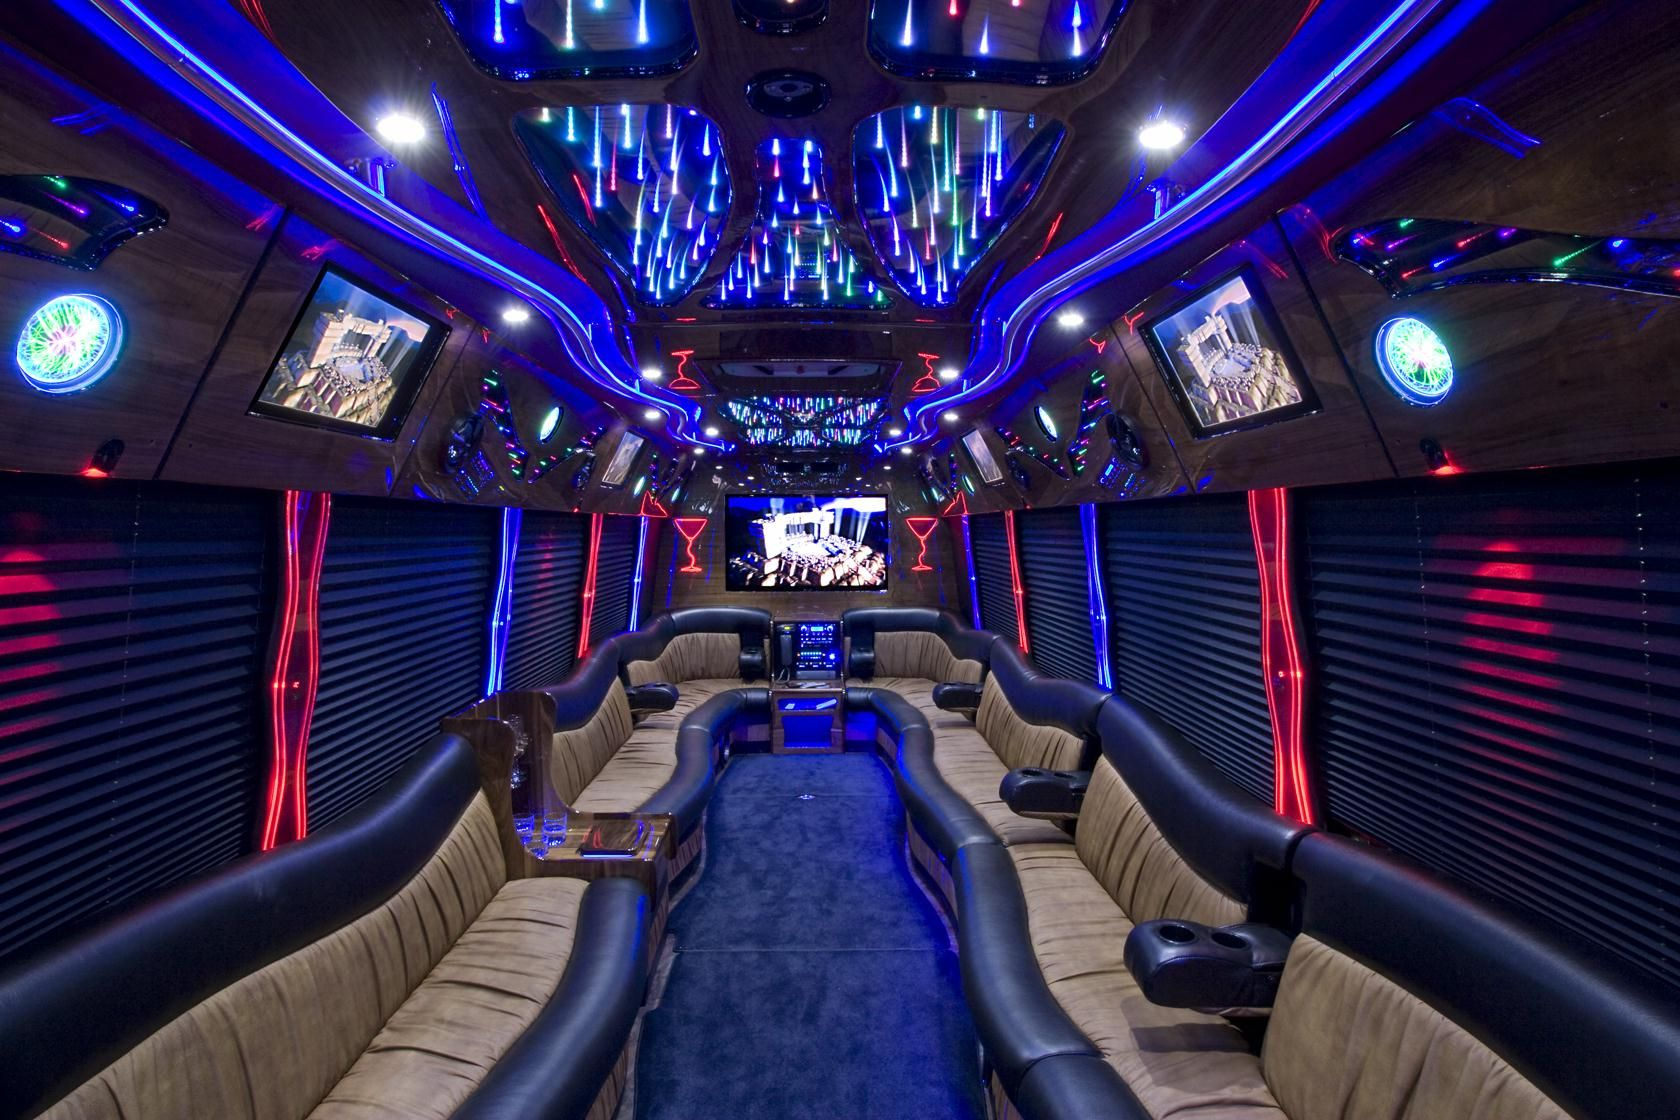 Avail the finest party bus rental services in miami for